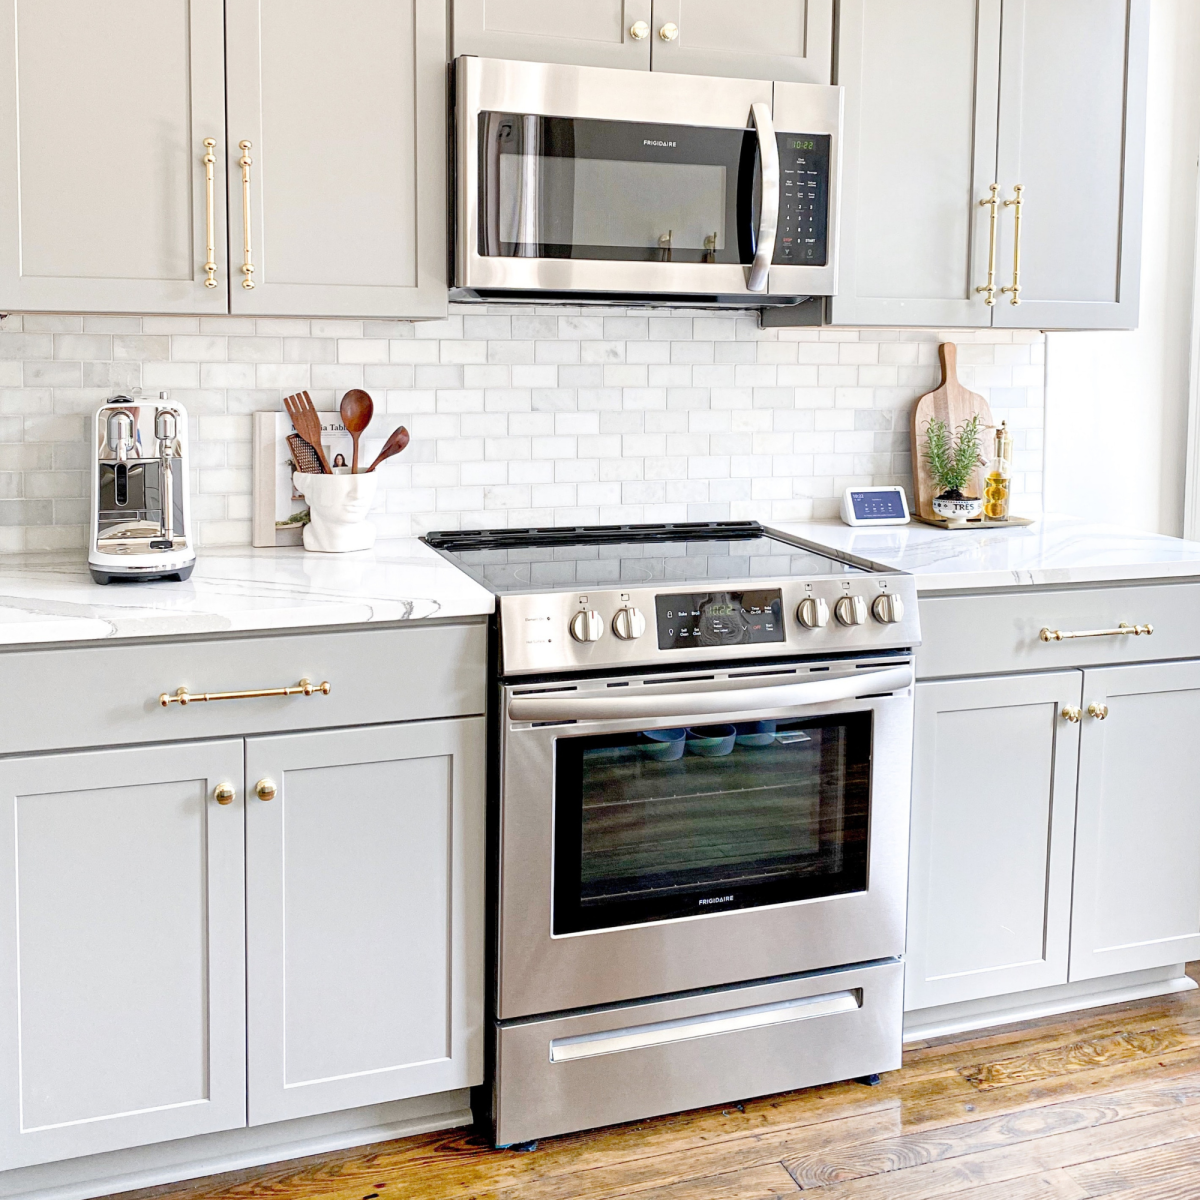 How to install a microwave over your stove or oven range.